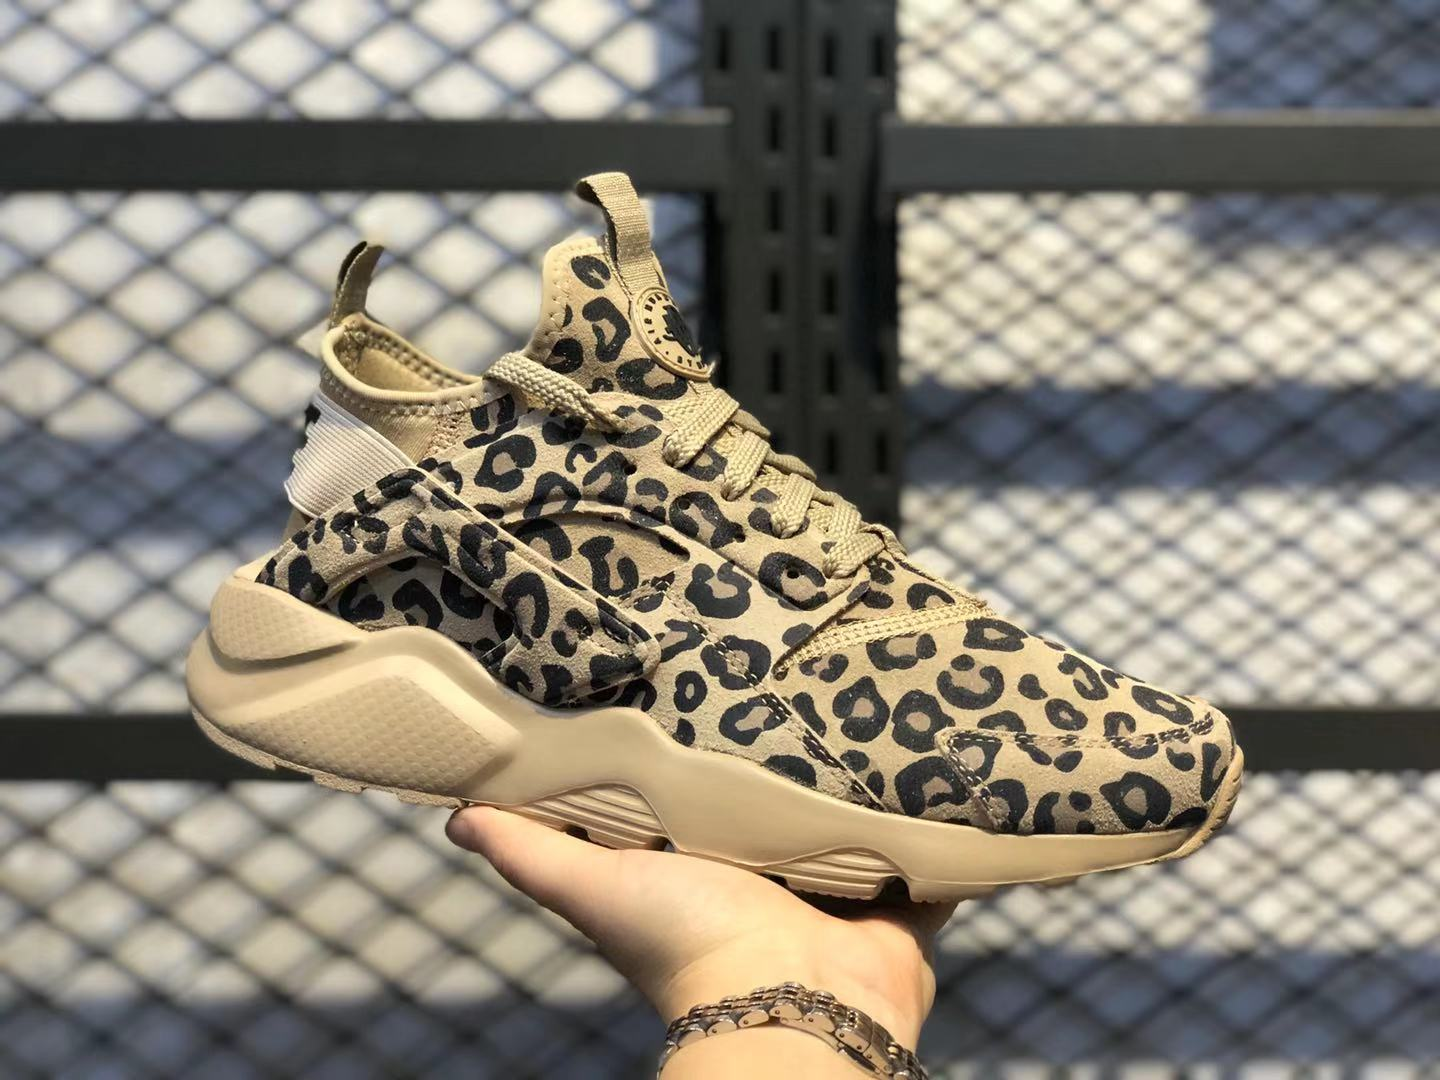 Nike Air Huarache Run Ultra Suede Leopard Print Pony In Stock 829669-557